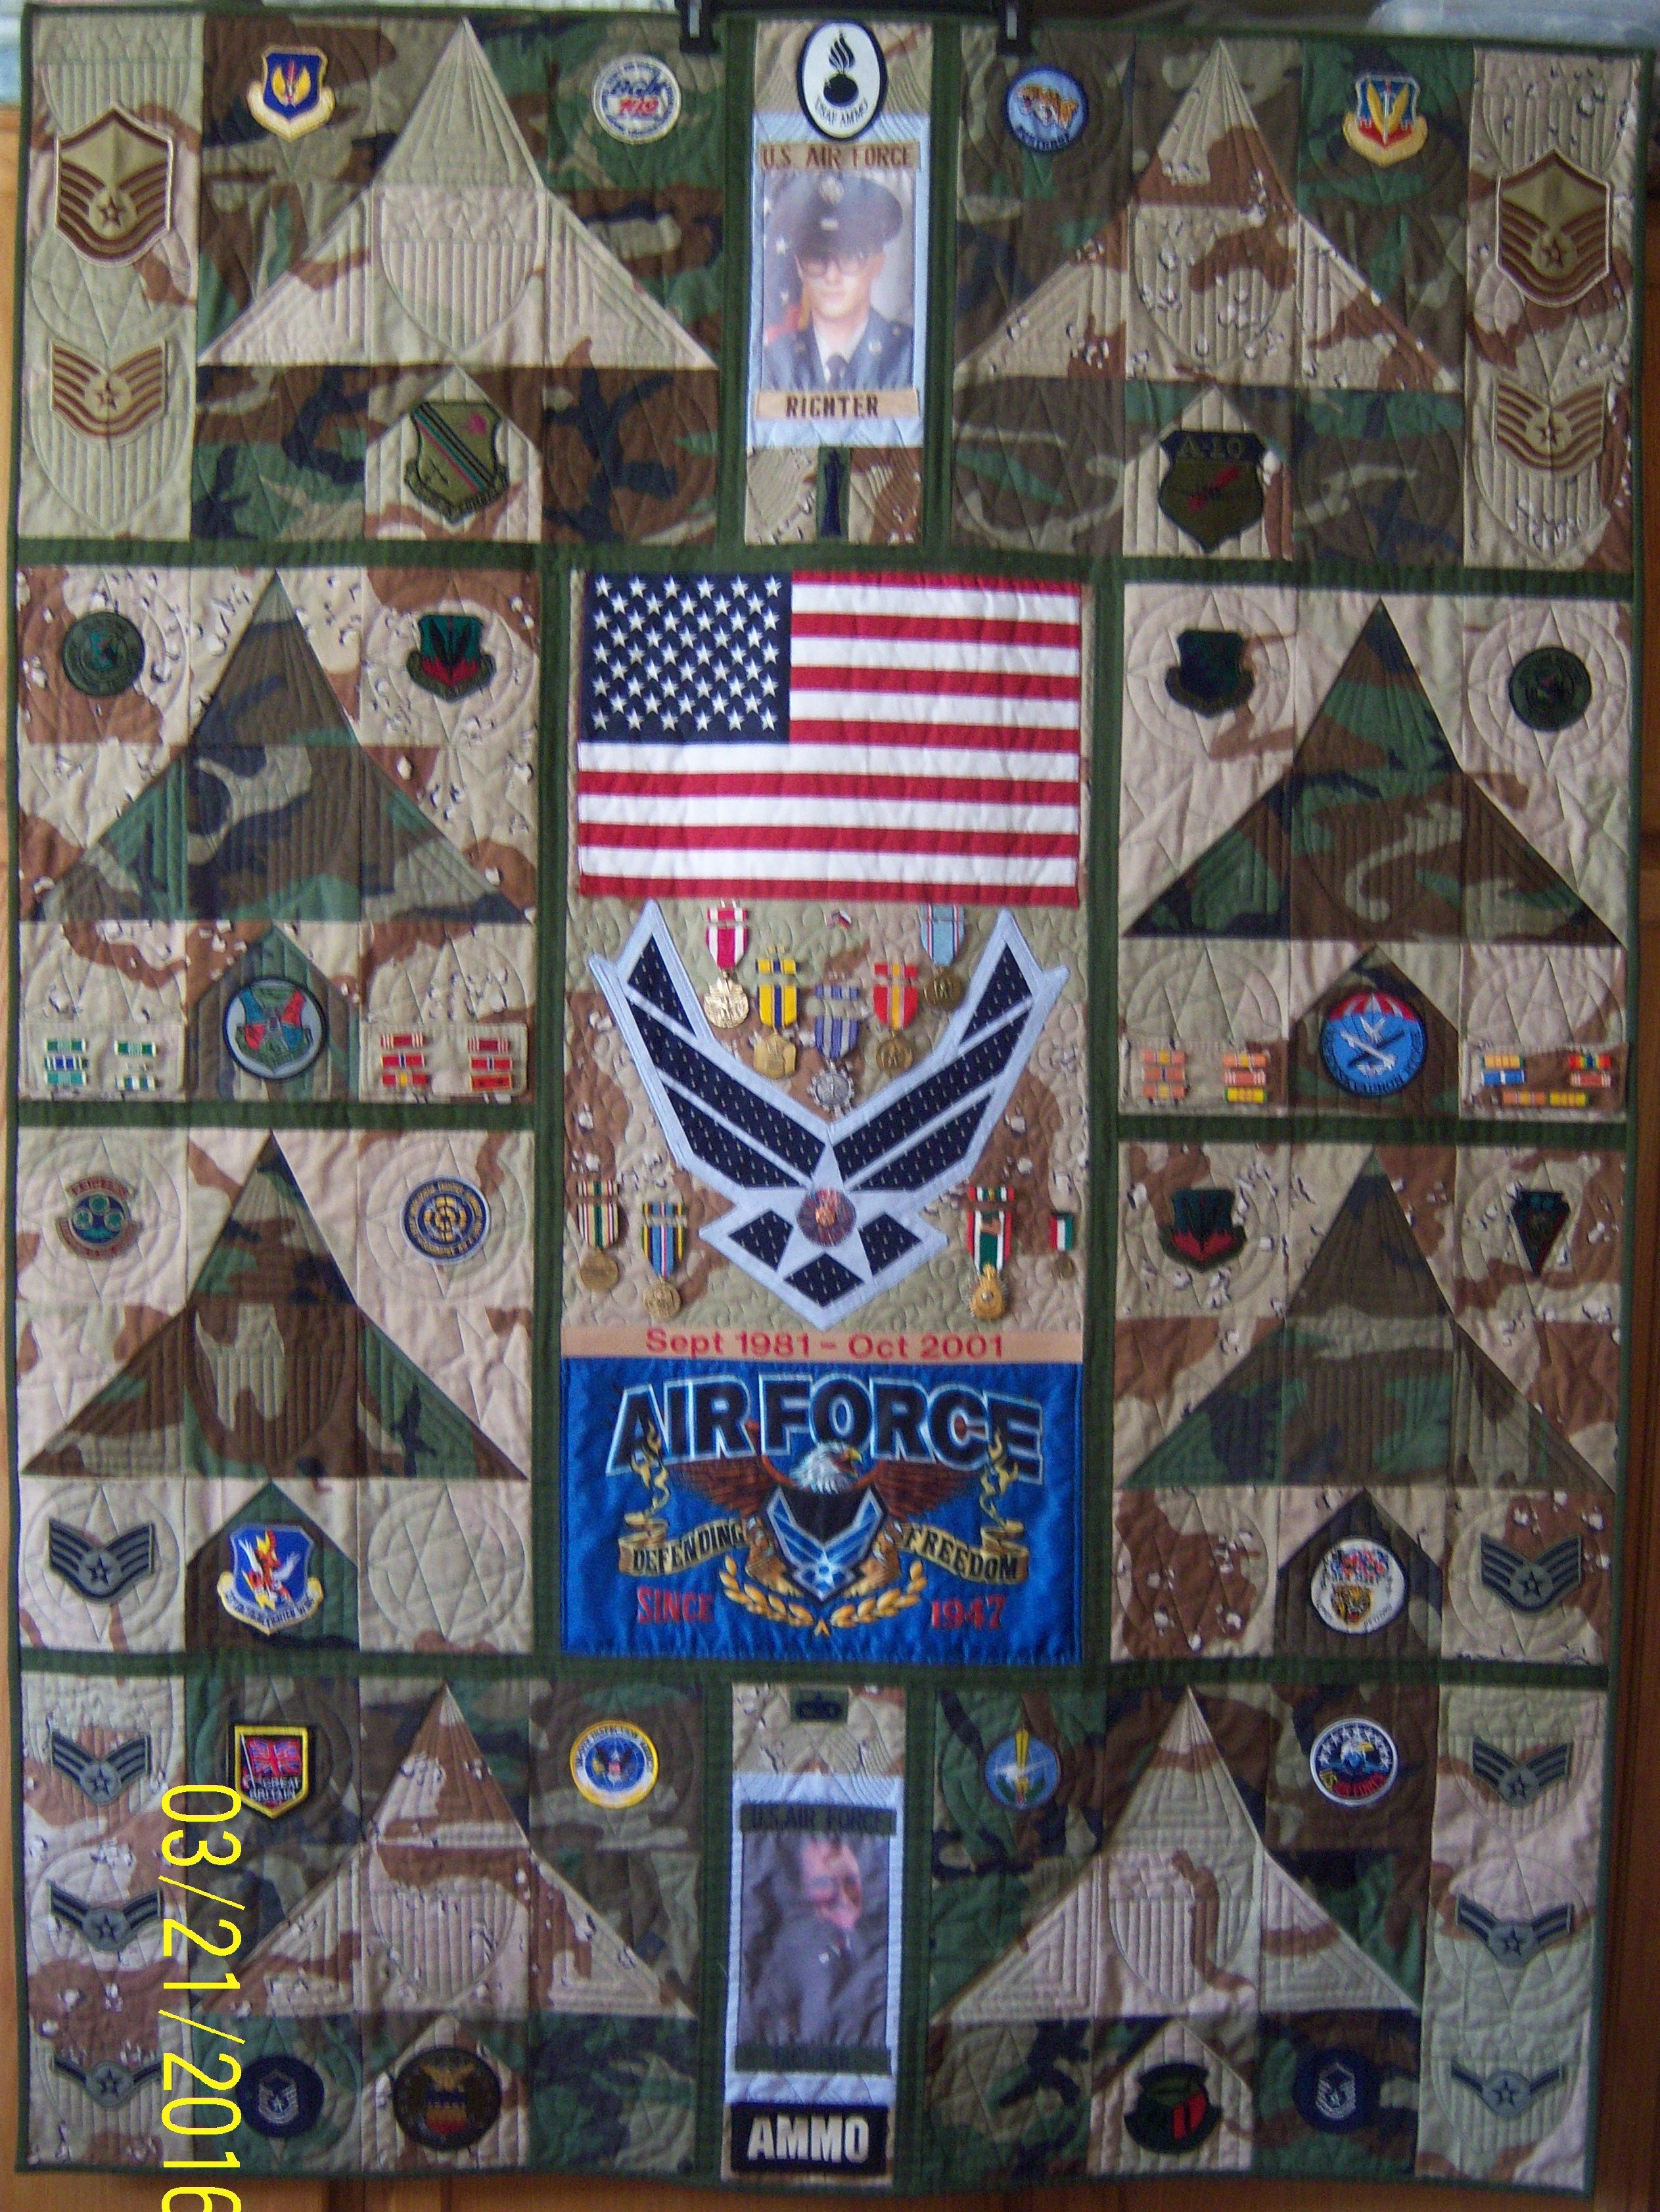 Learn These Air Force Uniform Patches {Swypeout}